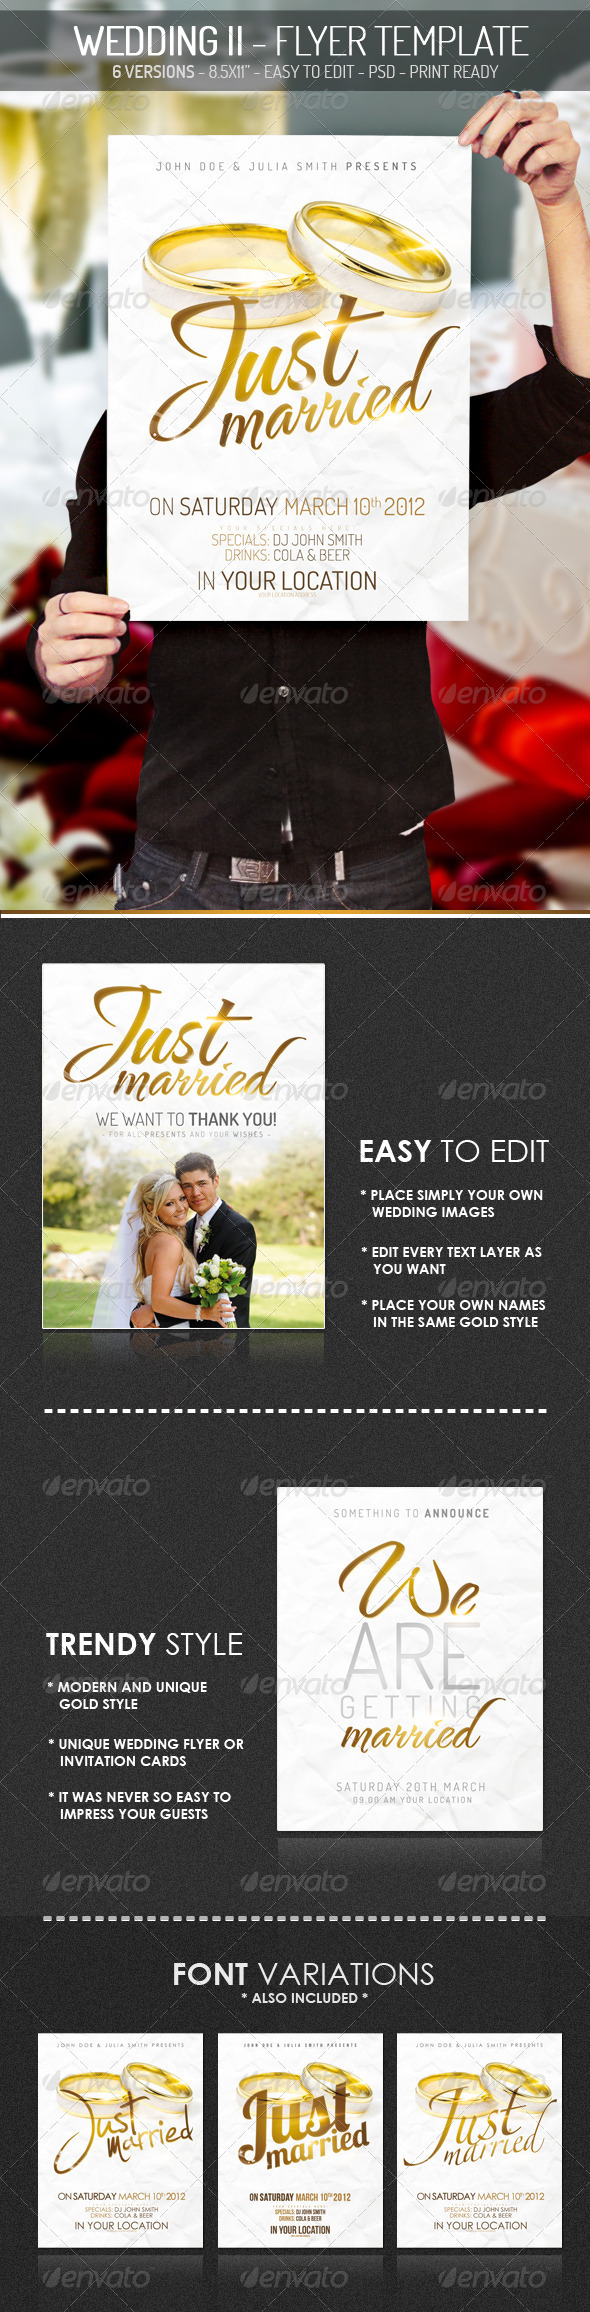 Wedding II - Flyer Template - Clubs & Parties Events